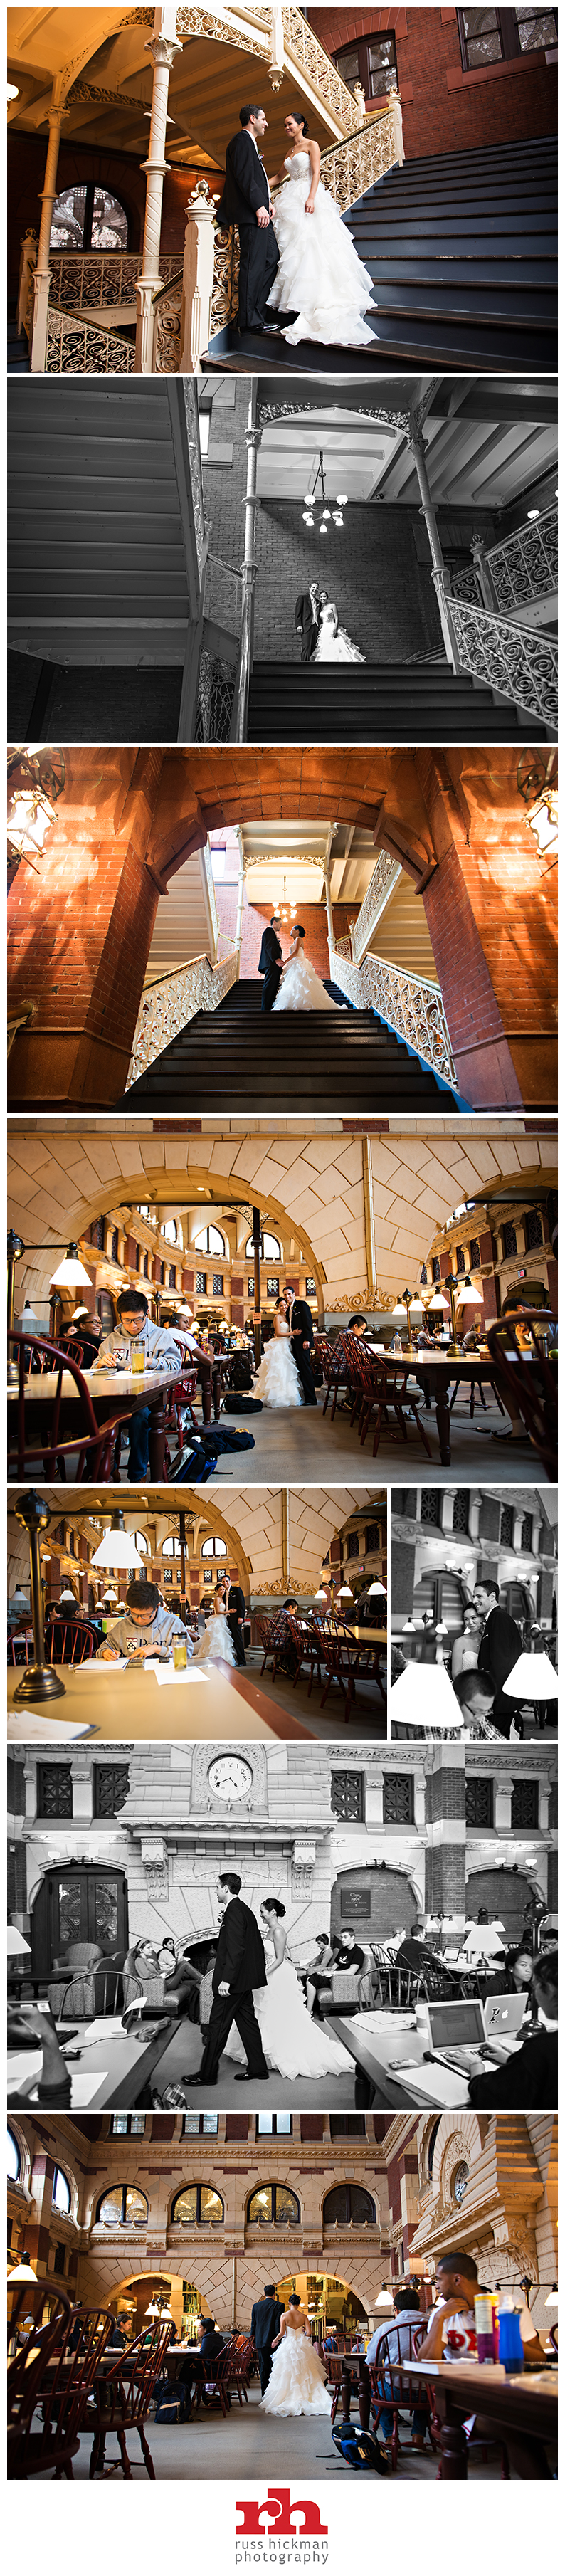 Philadelphia Wedding Photographer EMWB0008